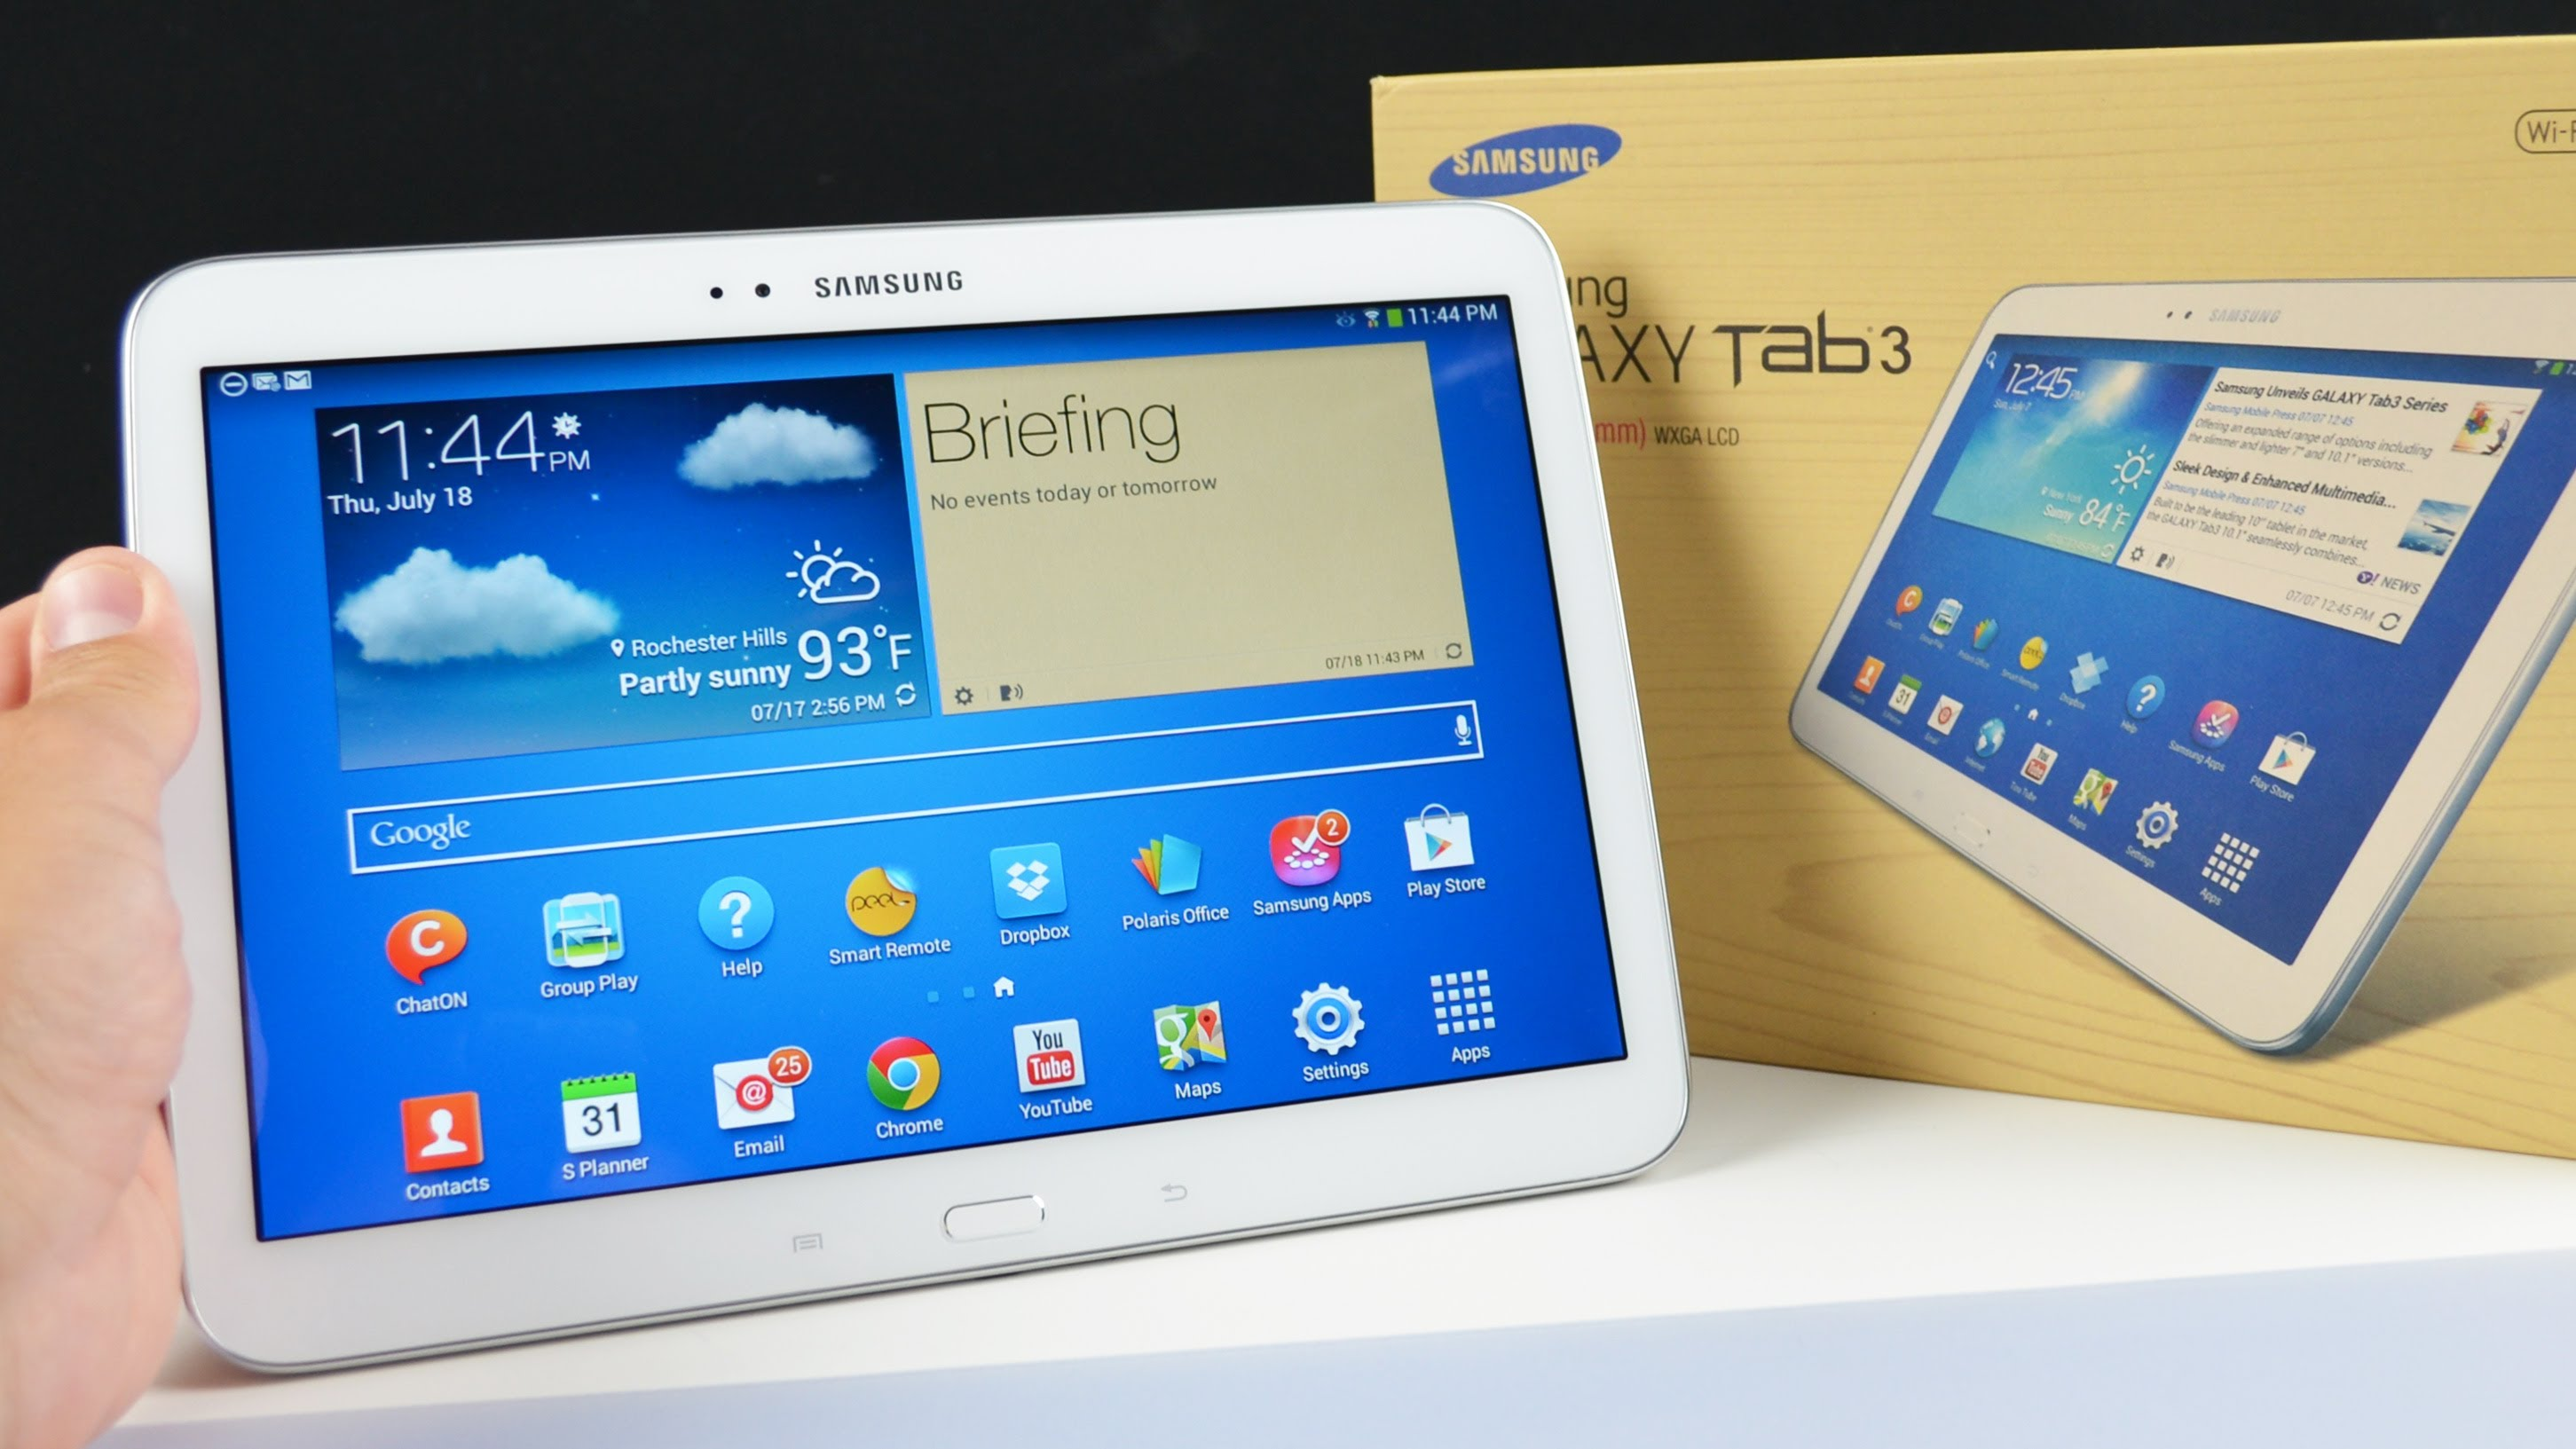 Root and Install TWRP Recovery on Samsung Galaxy Tab 3 10.1, How to Root Samsung Galaxy Tab 3 10.1, Install TWRP Recovery on Samsung Galaxy Tab 3 10.1, Root Samsung Galaxy Tab 3 10.1 Using supersu